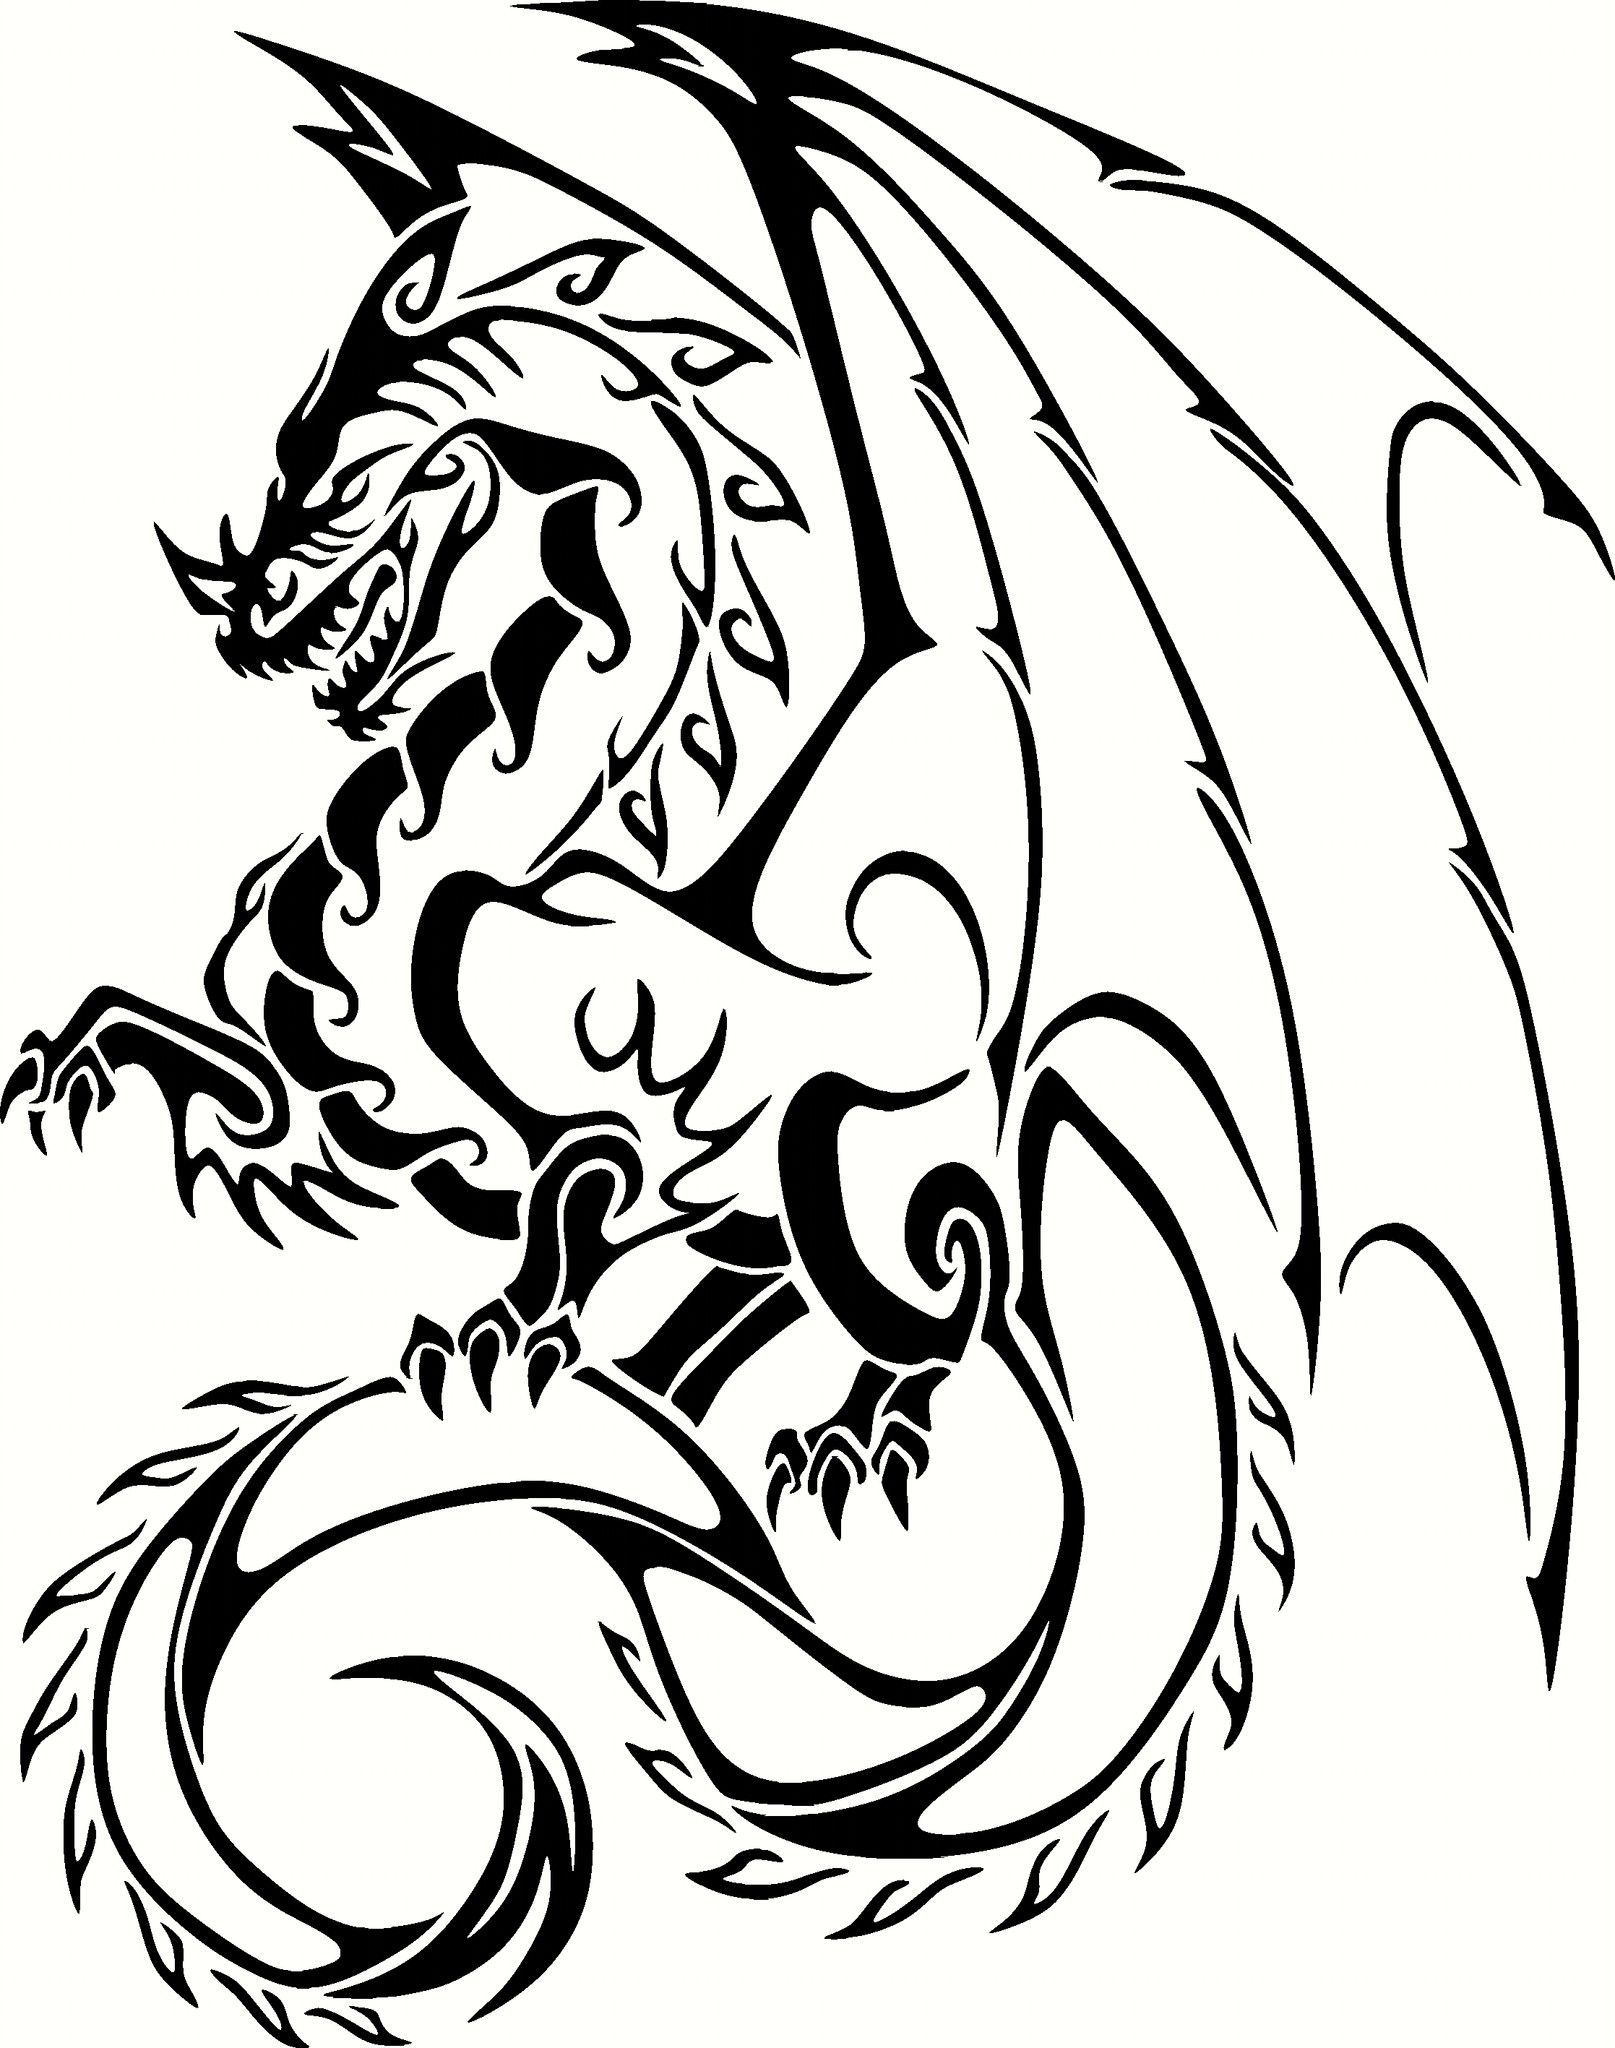 Dragon Vinyl Cut Out Decal Sticker